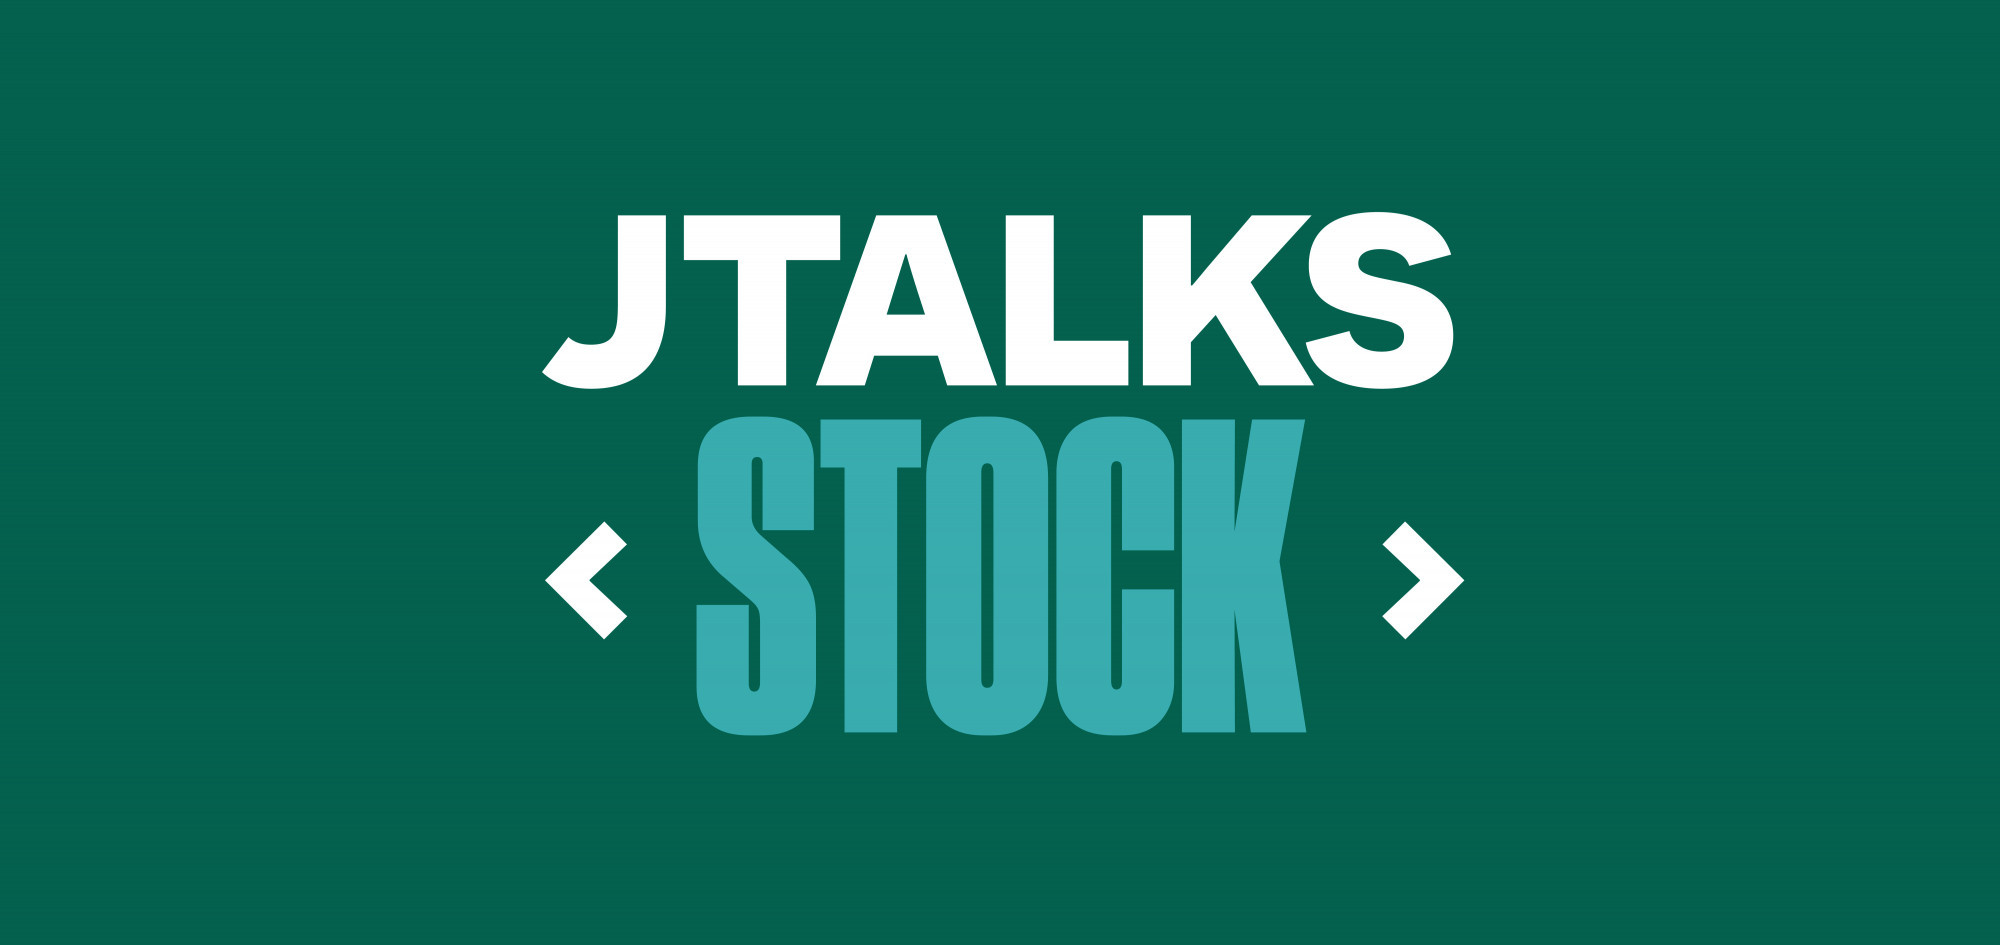 [ONLINE] Jouska Talks Stock: The Guide to Becoming a Confident Investor - Batch 3